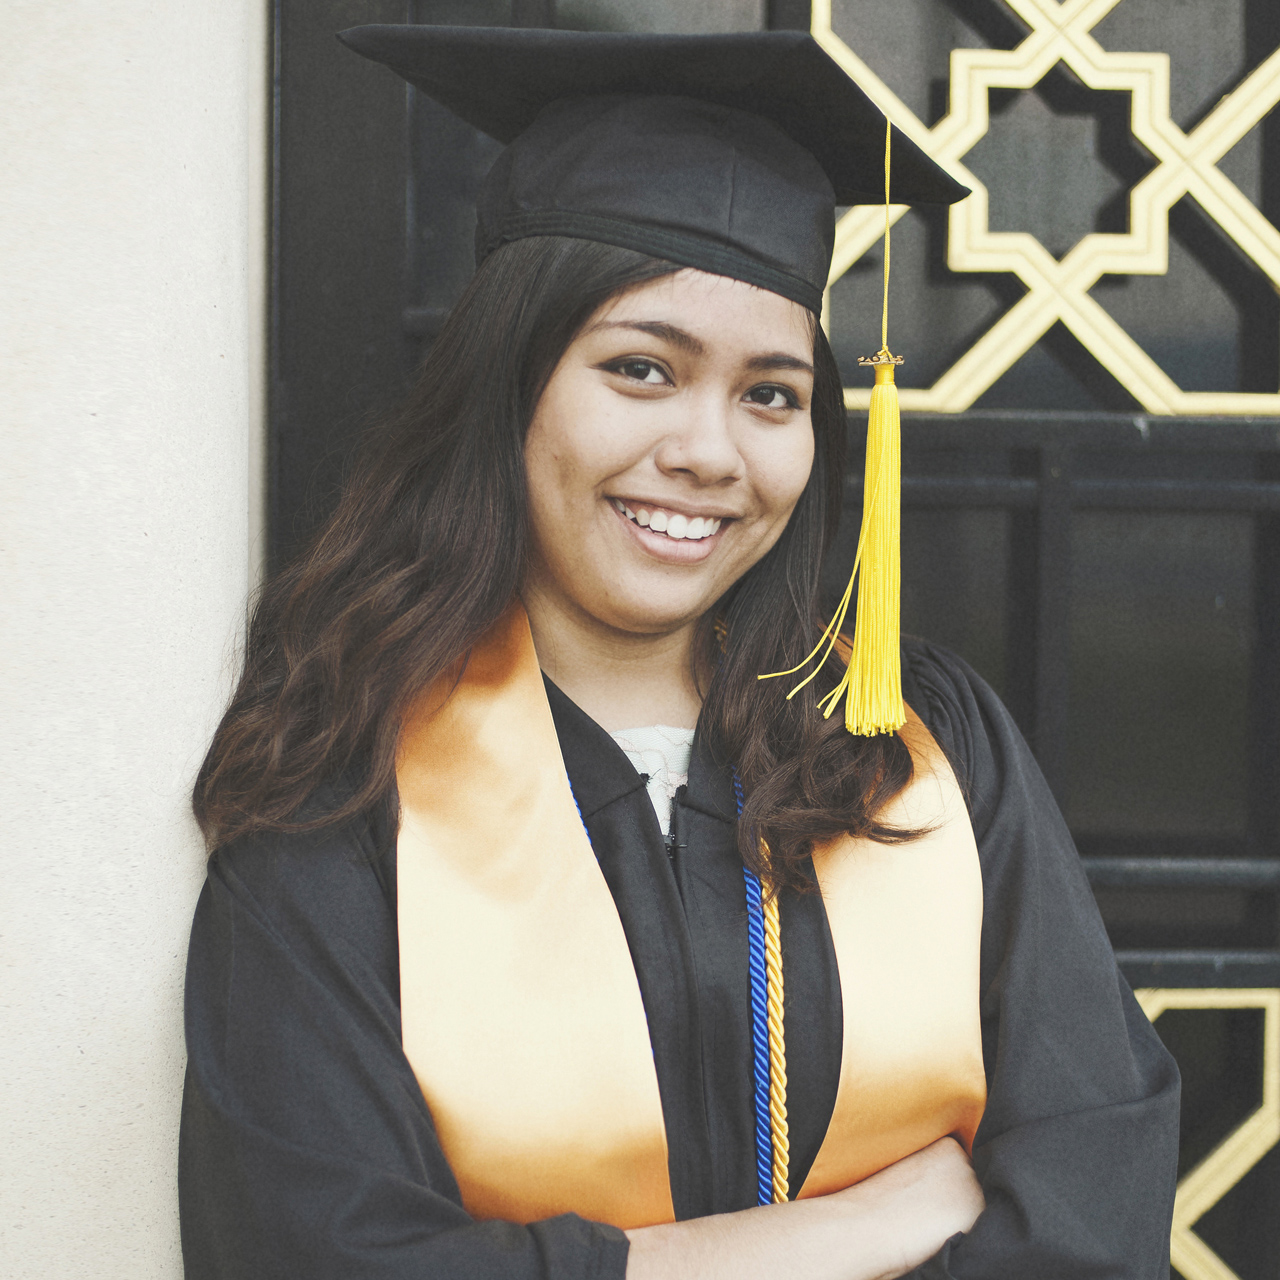 Ayesha Graduation Photography